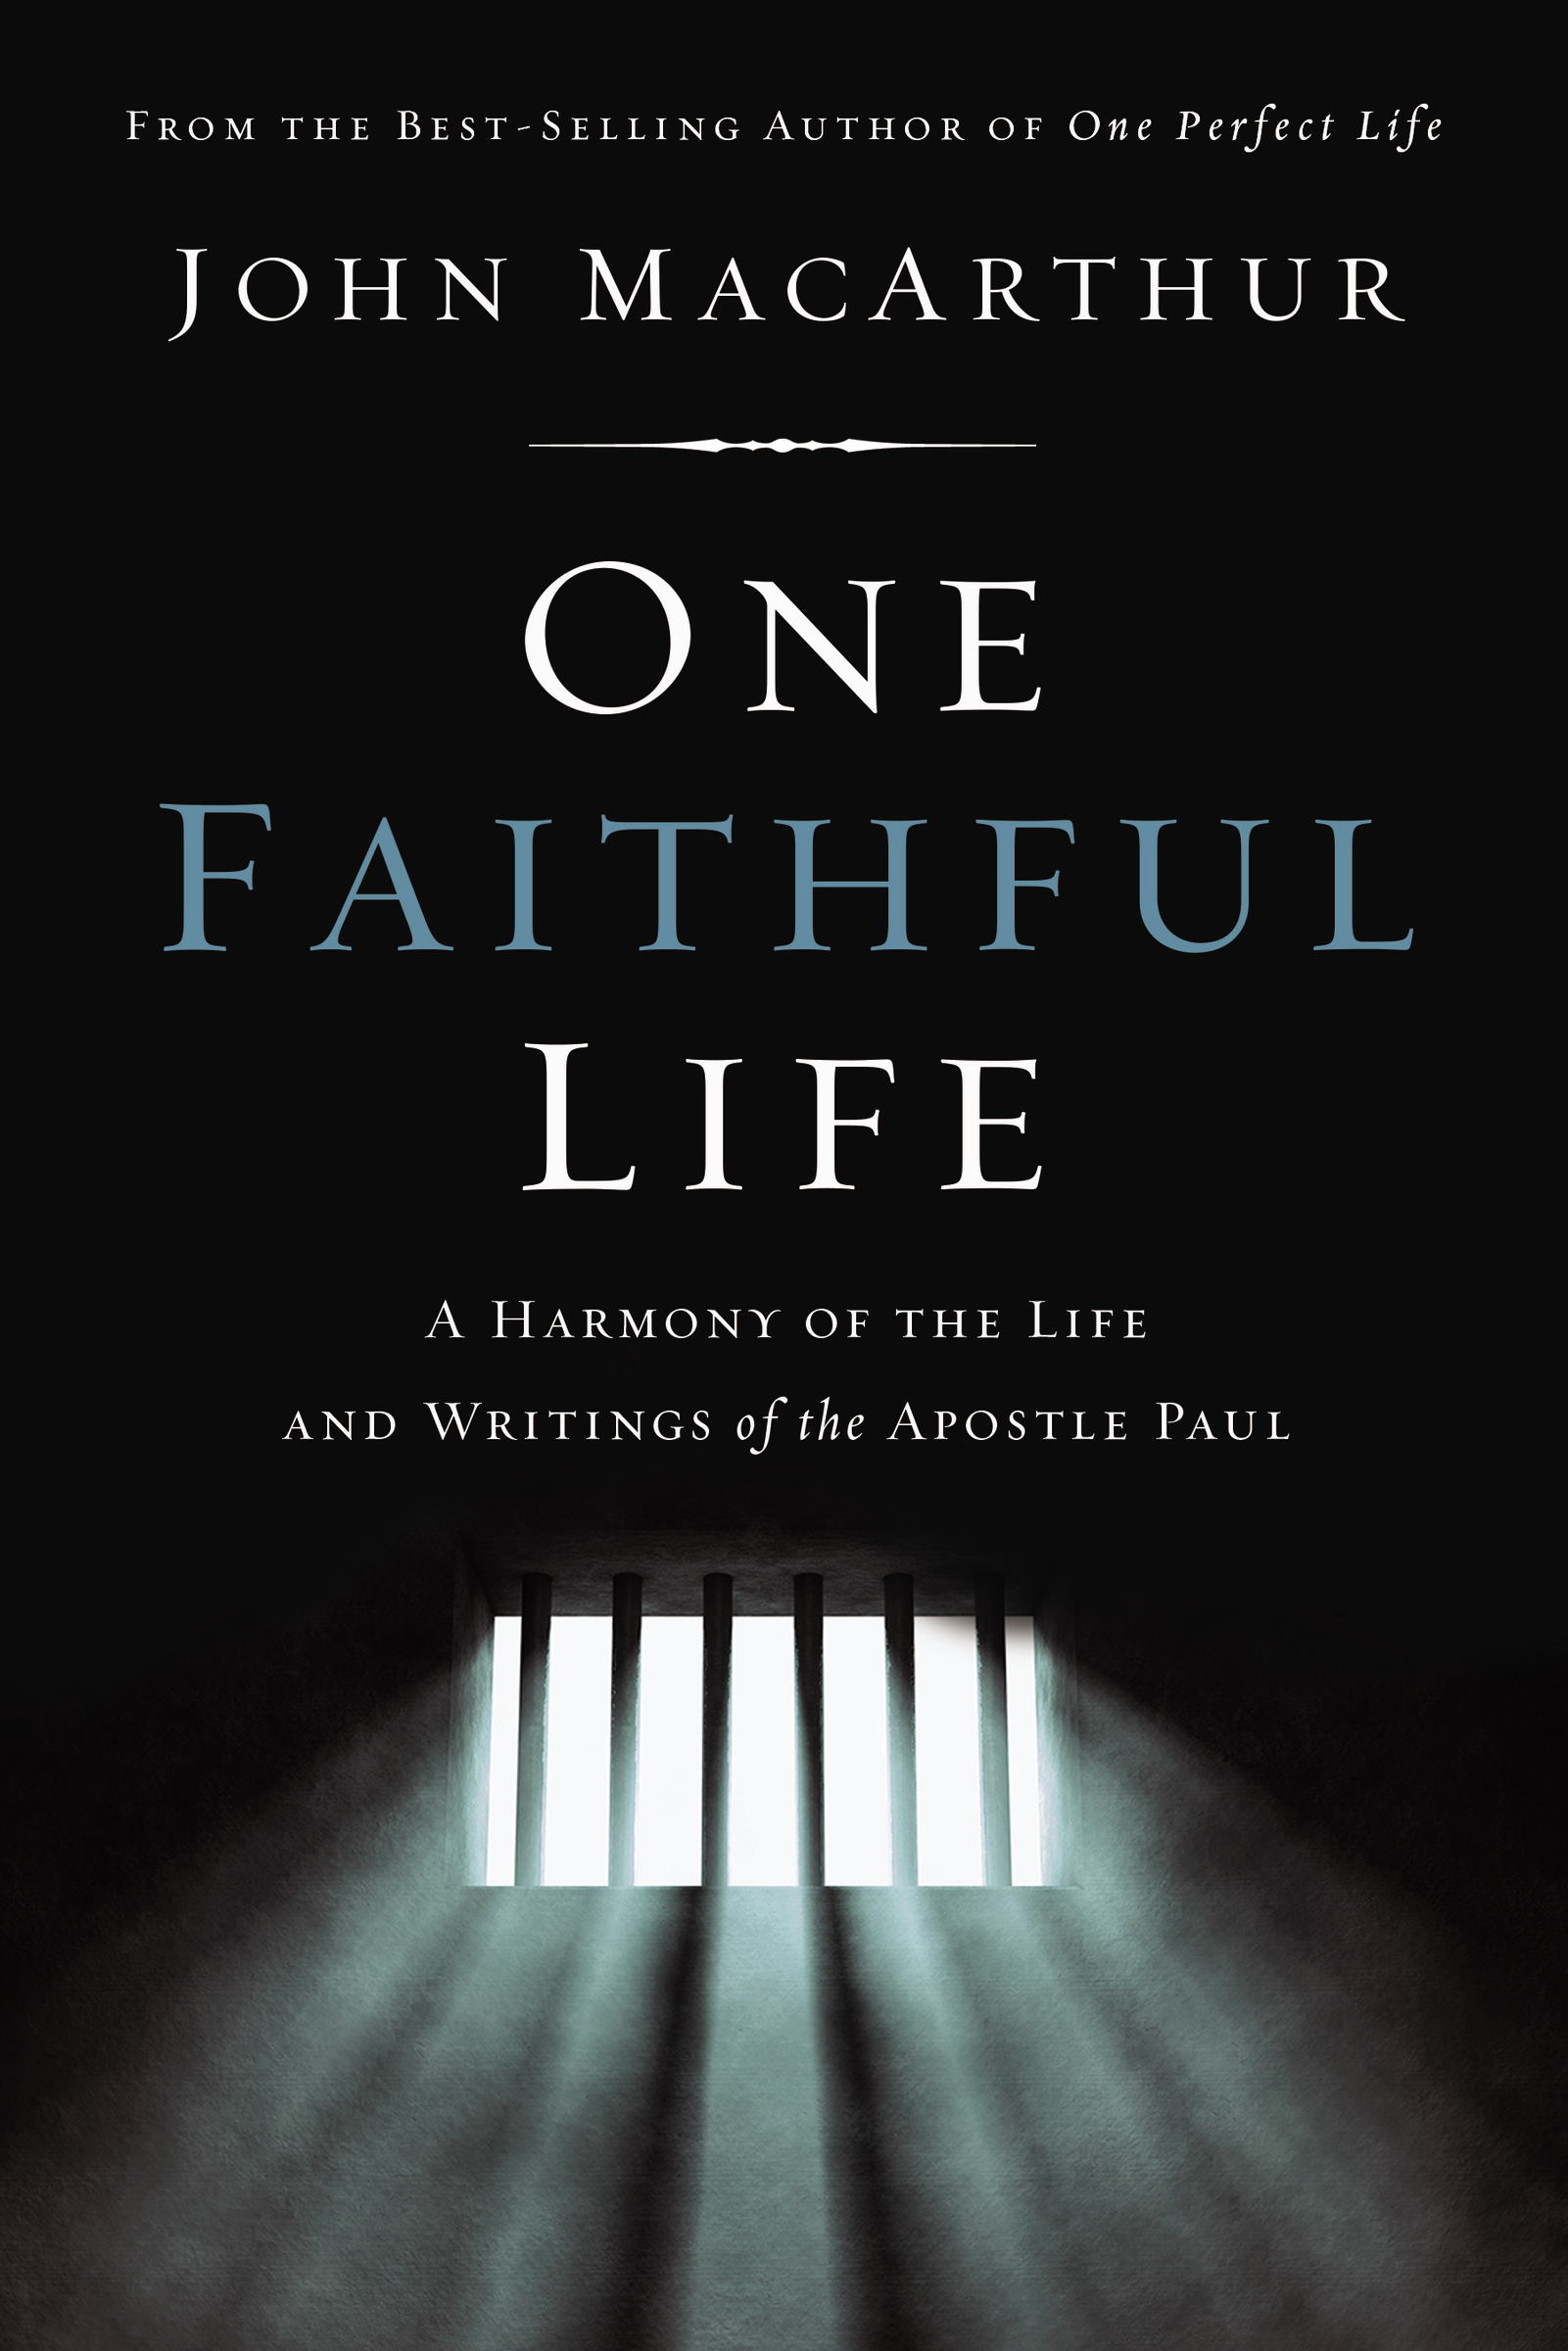 One Faithful Life [electronic resource] : A Harmony of the Life and Letters of Paul